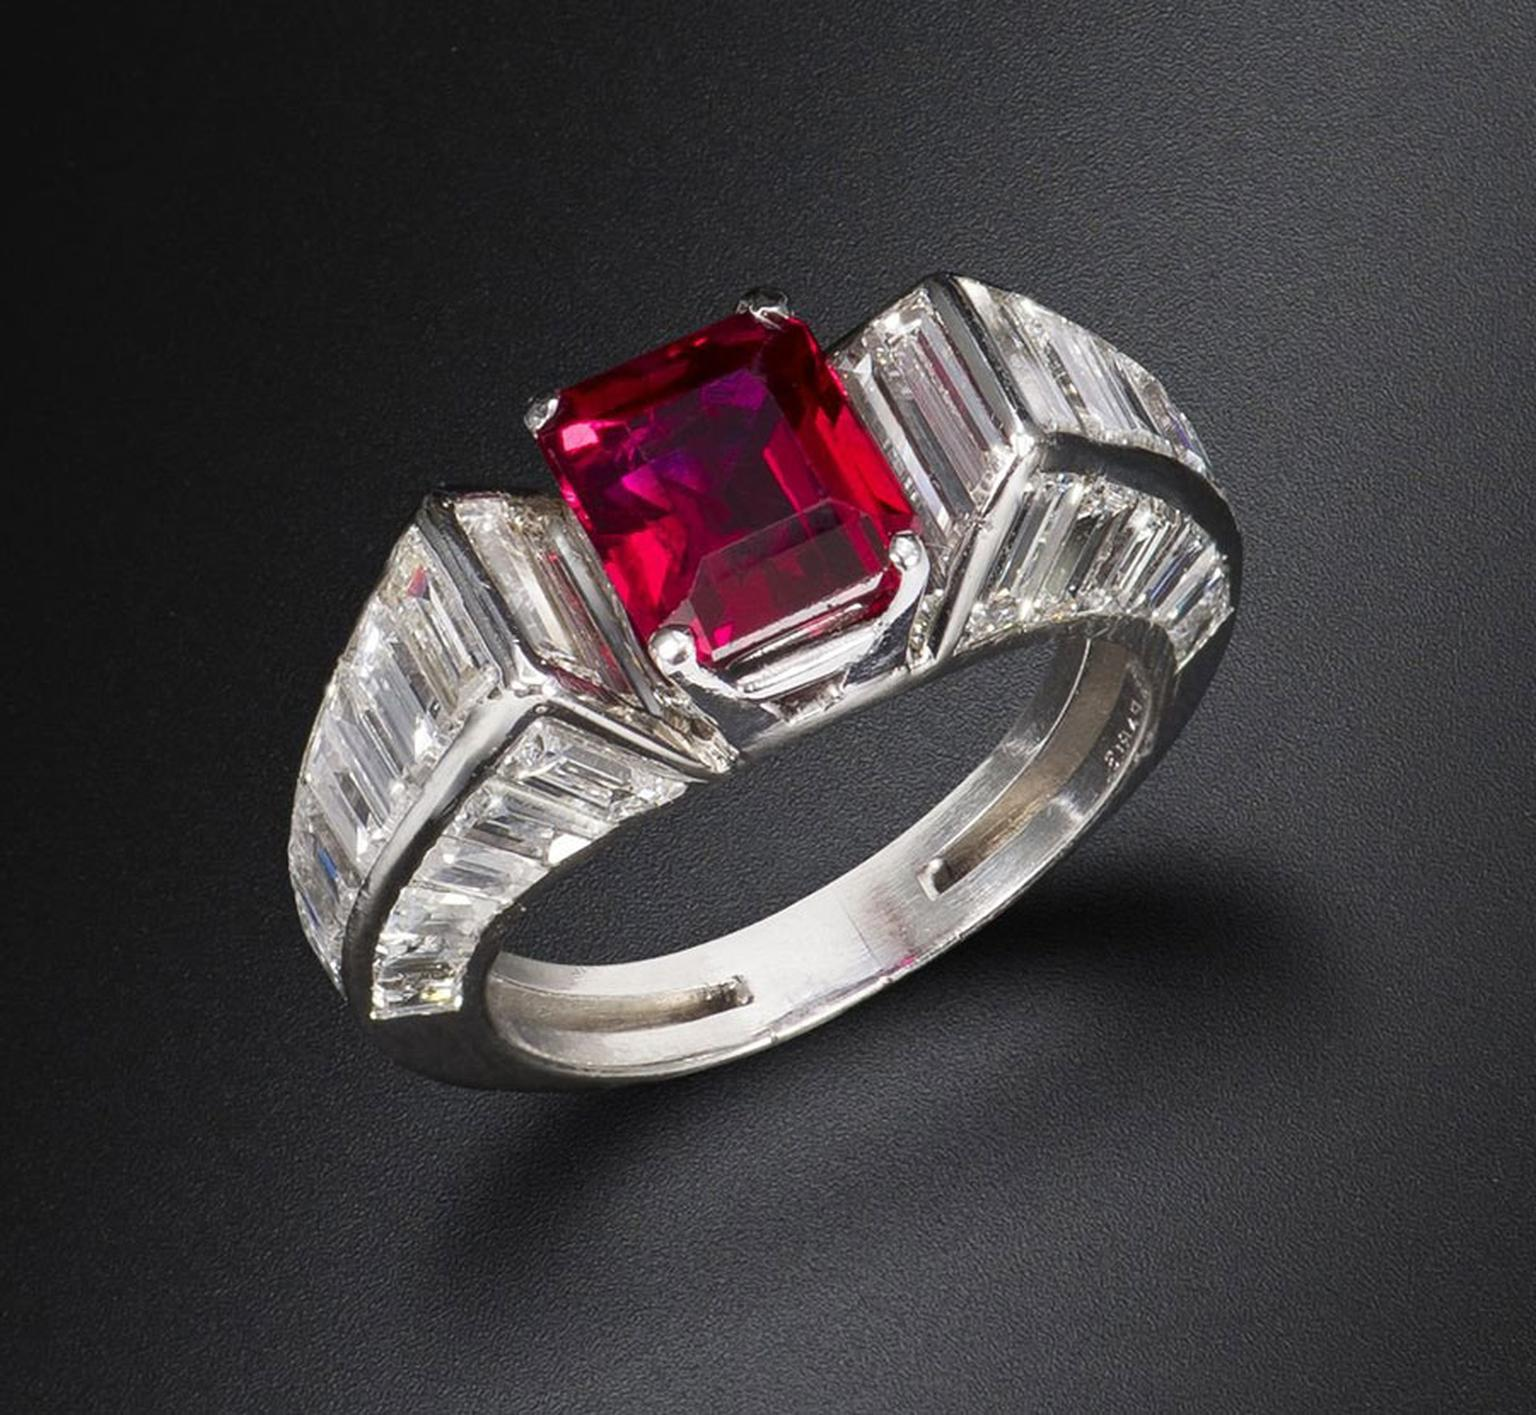 Bonhams-A-ruby-and-diamond-ring-by-Van-Cleef-Arpels